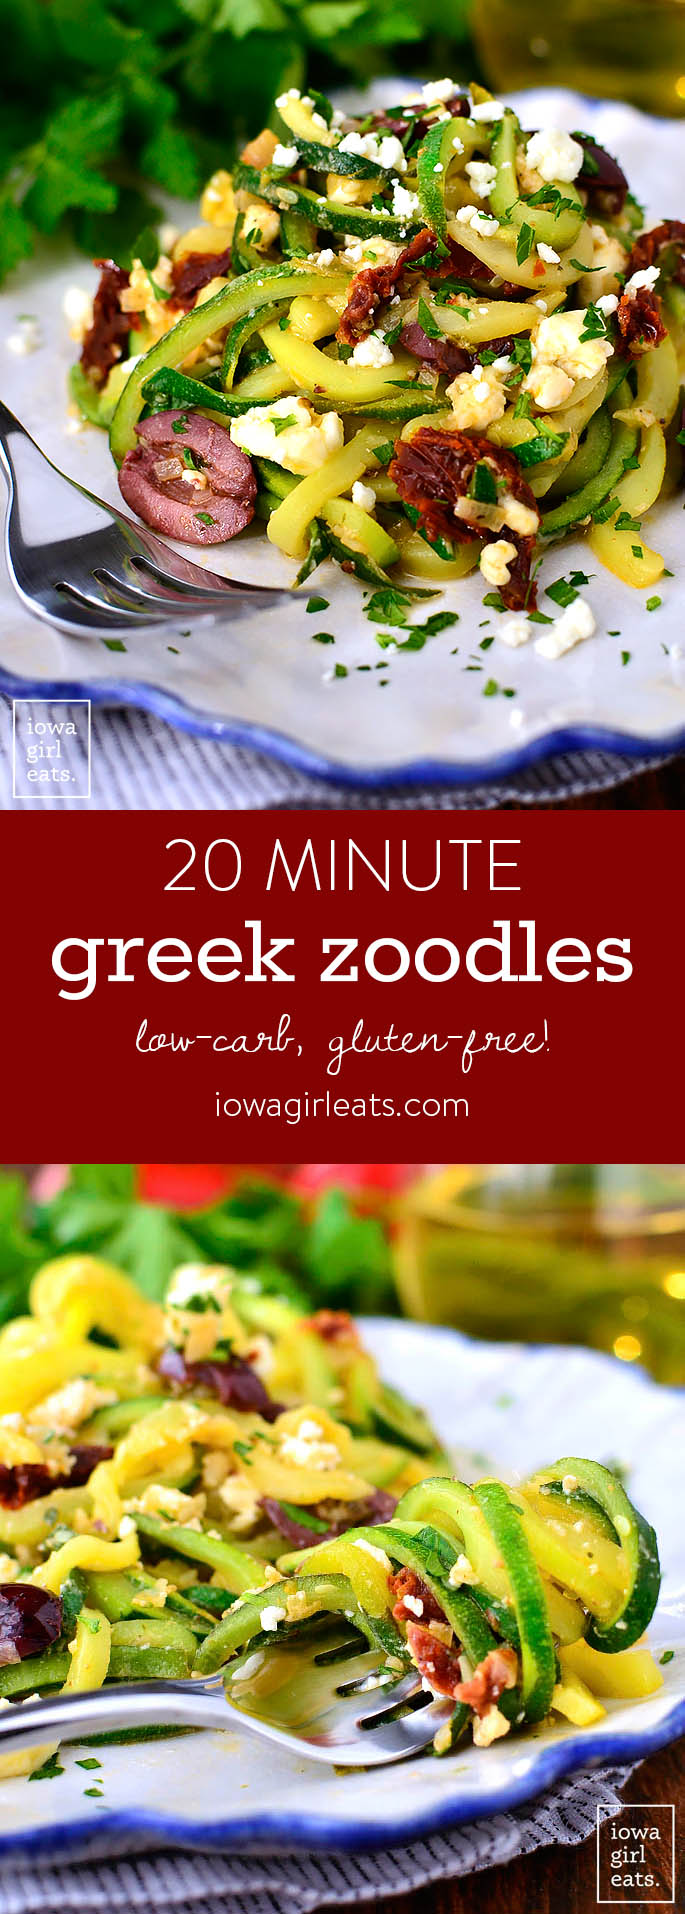 Greek Zoodles cook in just 10 minutes and are full of fresh, clean flavors. Pair with chicken or shrimp, or serve as a gluten-free light main meal for two!